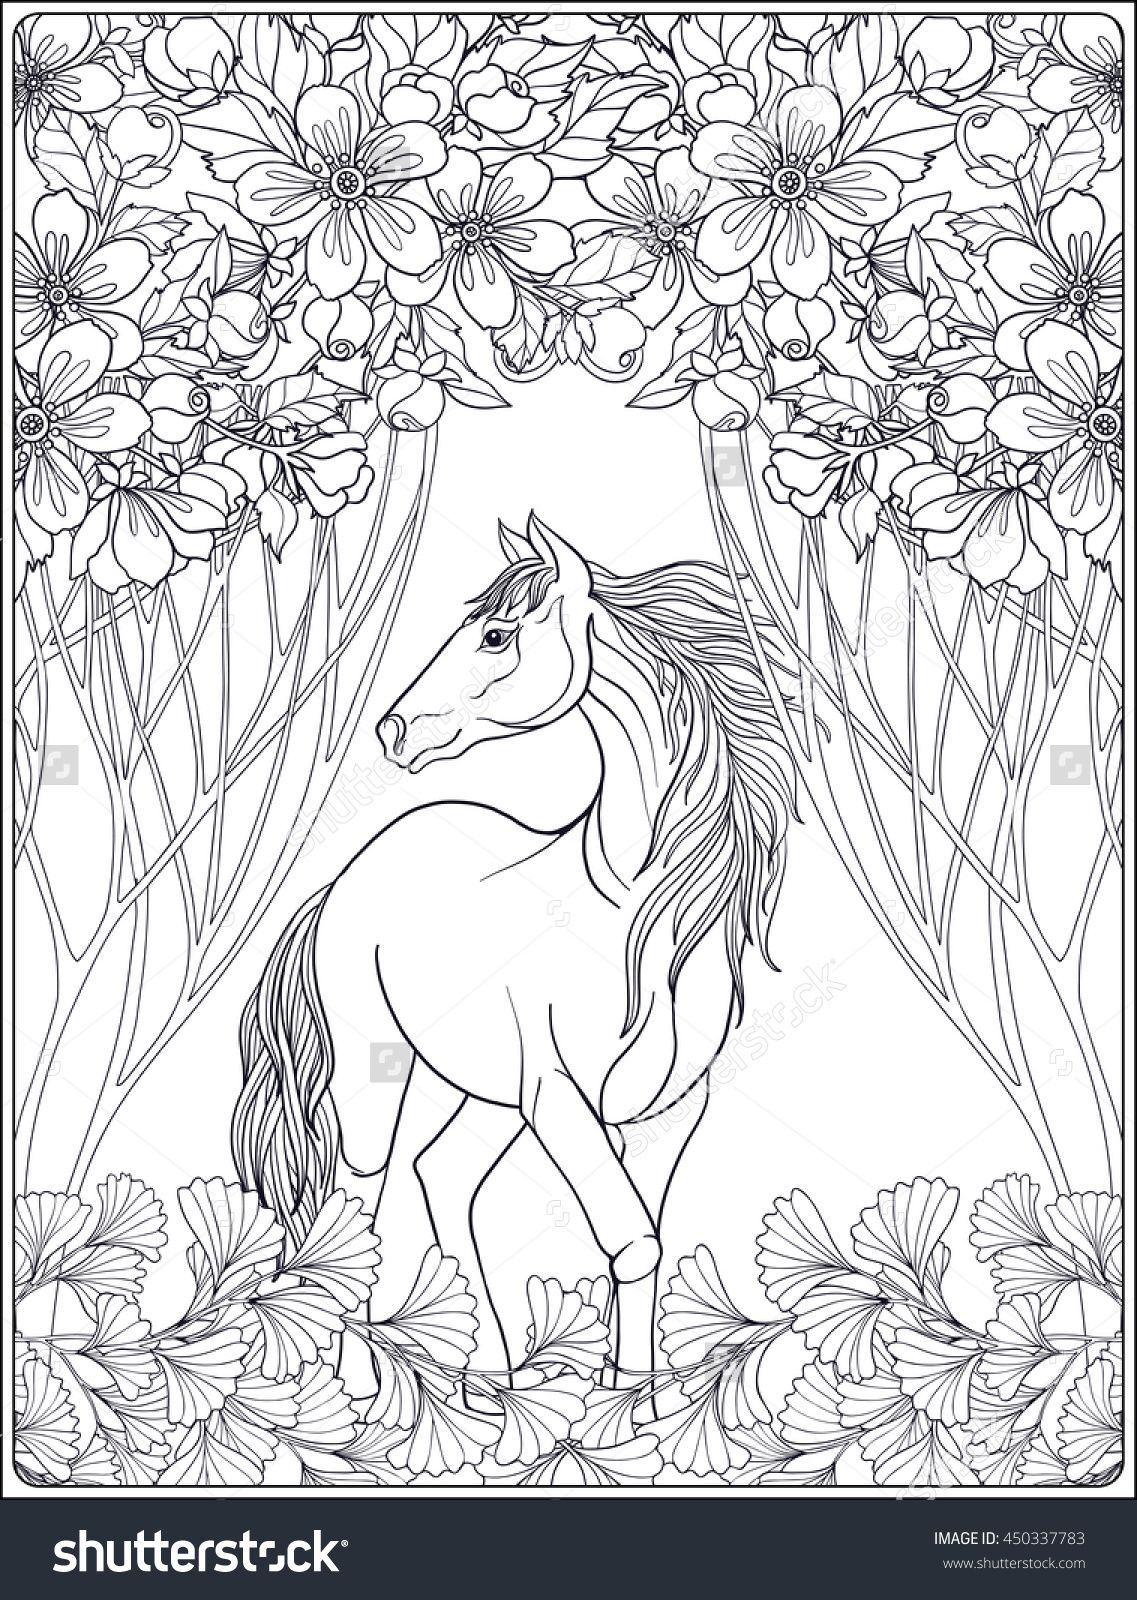 Horse In The Forest Coloring Page For Adults Shutterstock 450337783 Horse Coloring Books Horse Coloring Pages Coloring Books